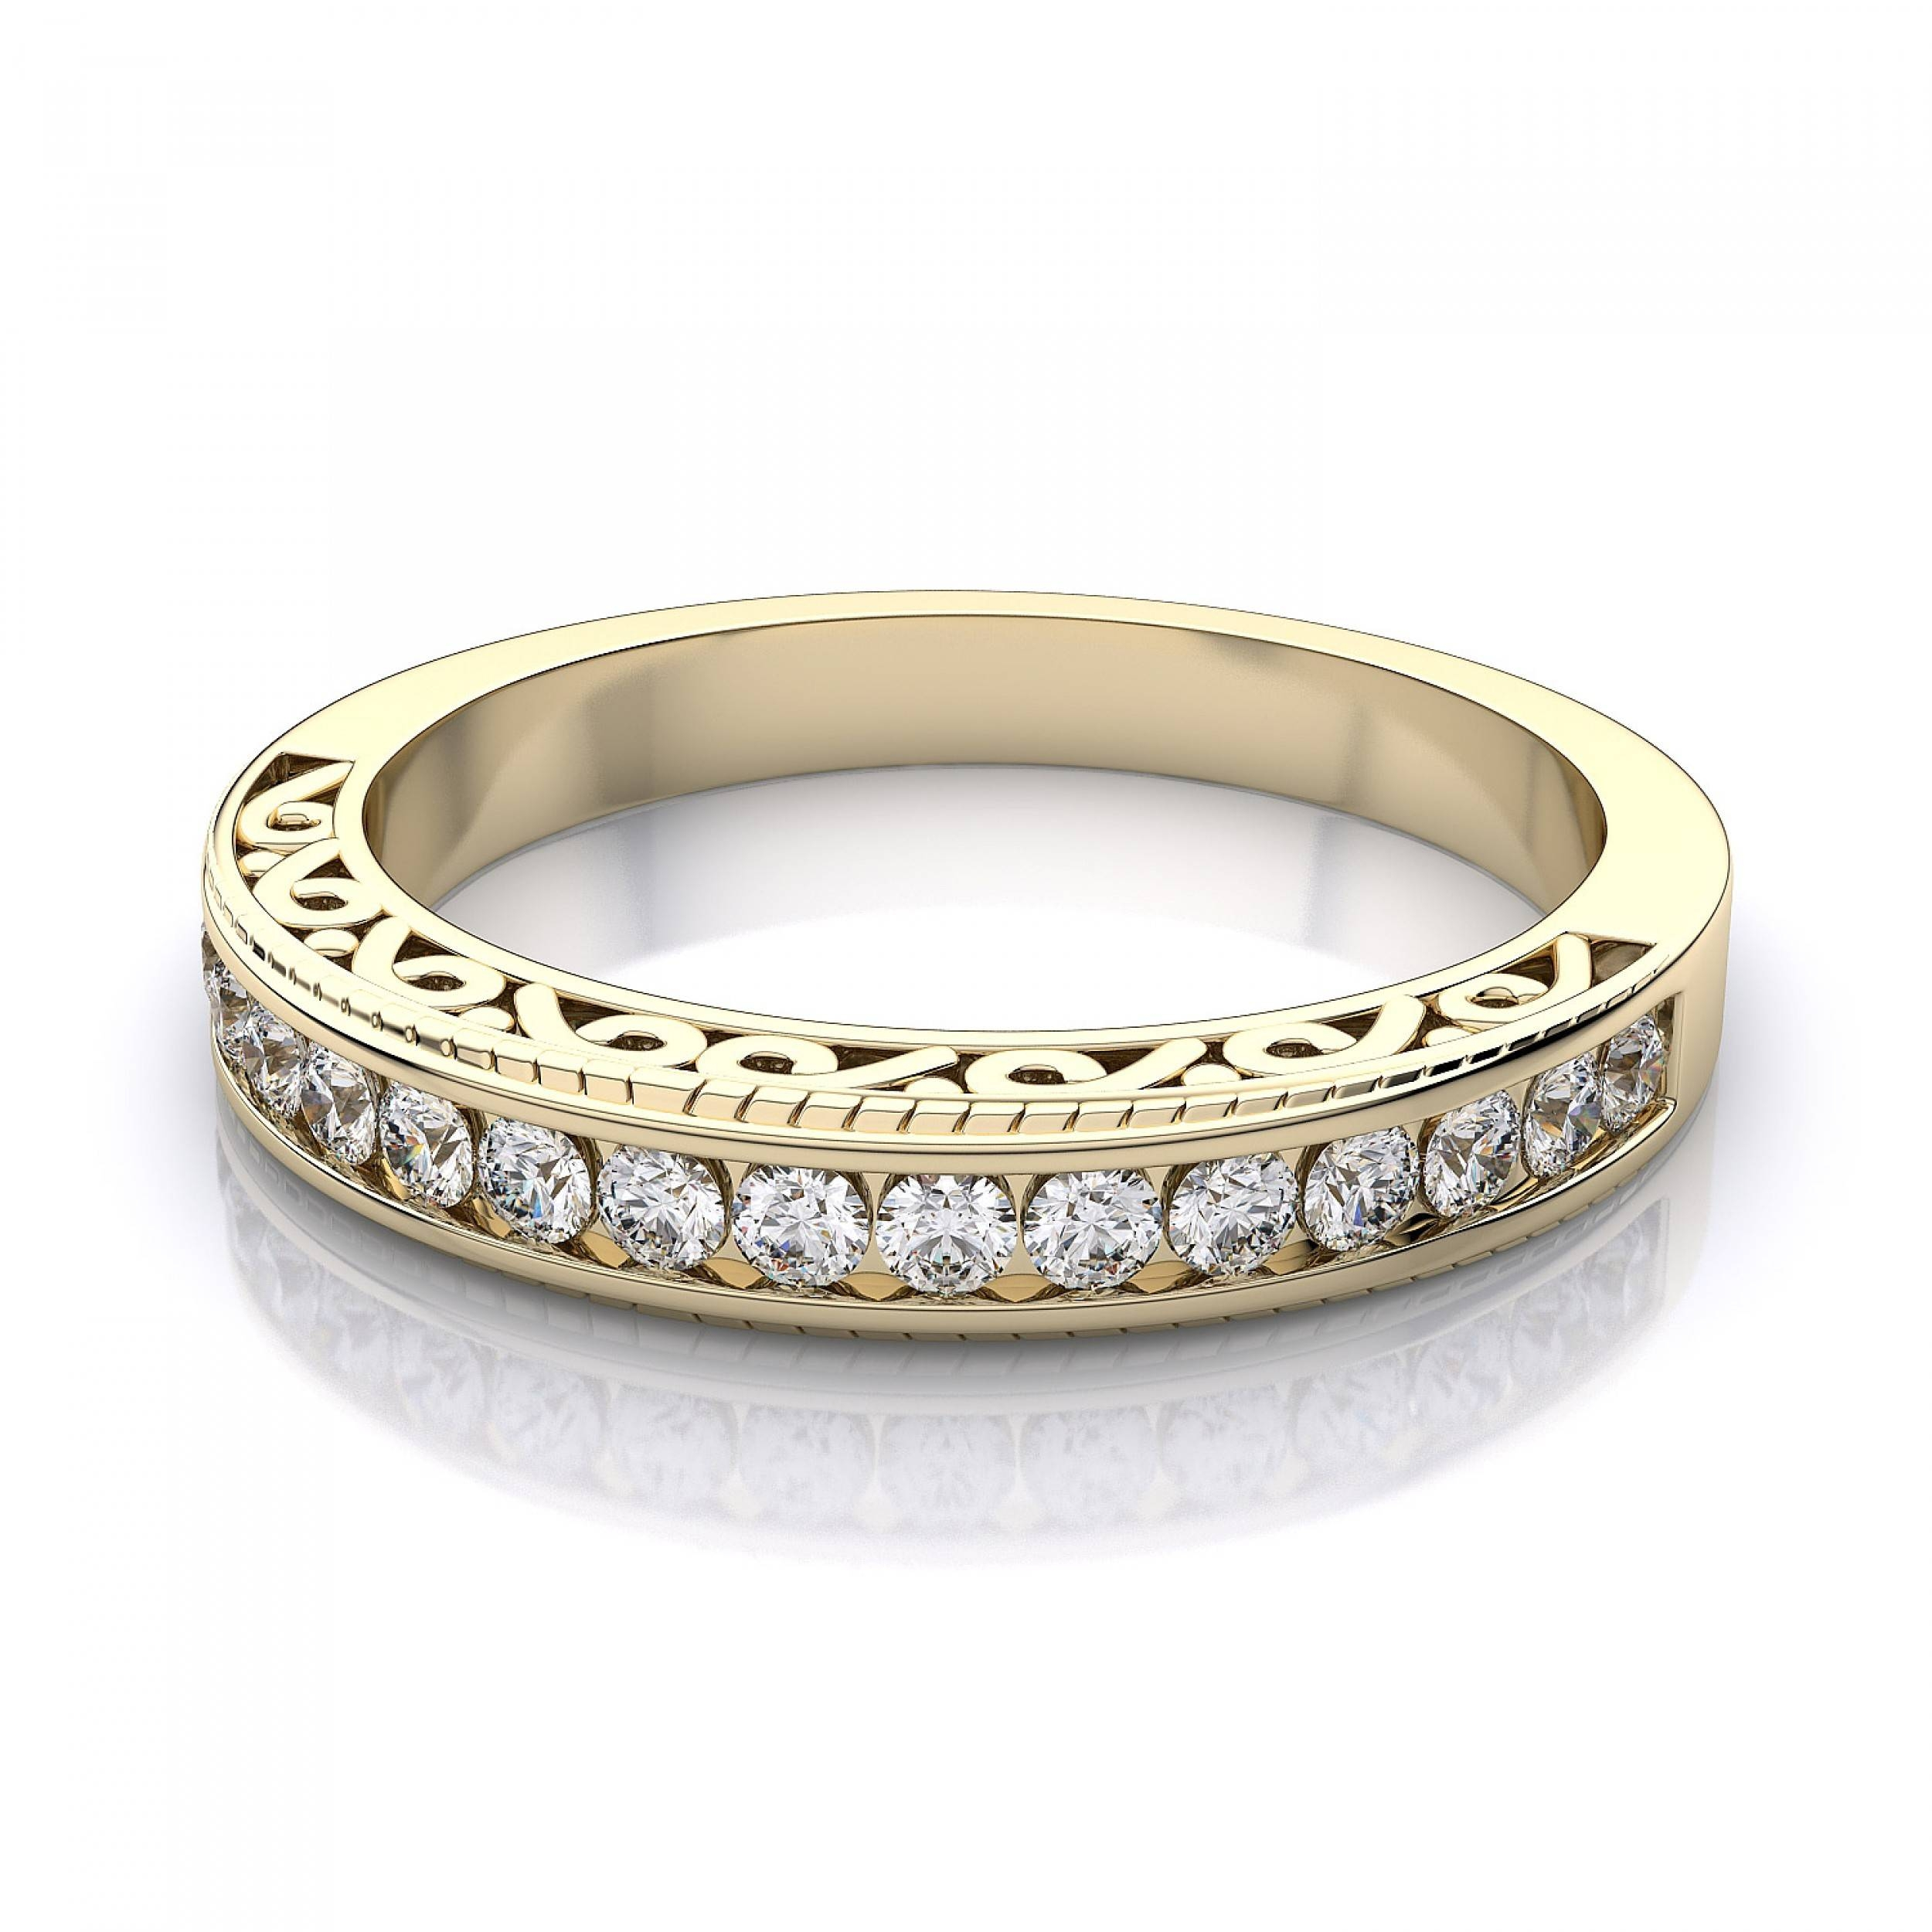 3.2Mm Channel Set Milgrain Diamond Wedding Ring In 18K Yellow Gold For 18K Gold Wedding Rings (Gallery 7 of 15)